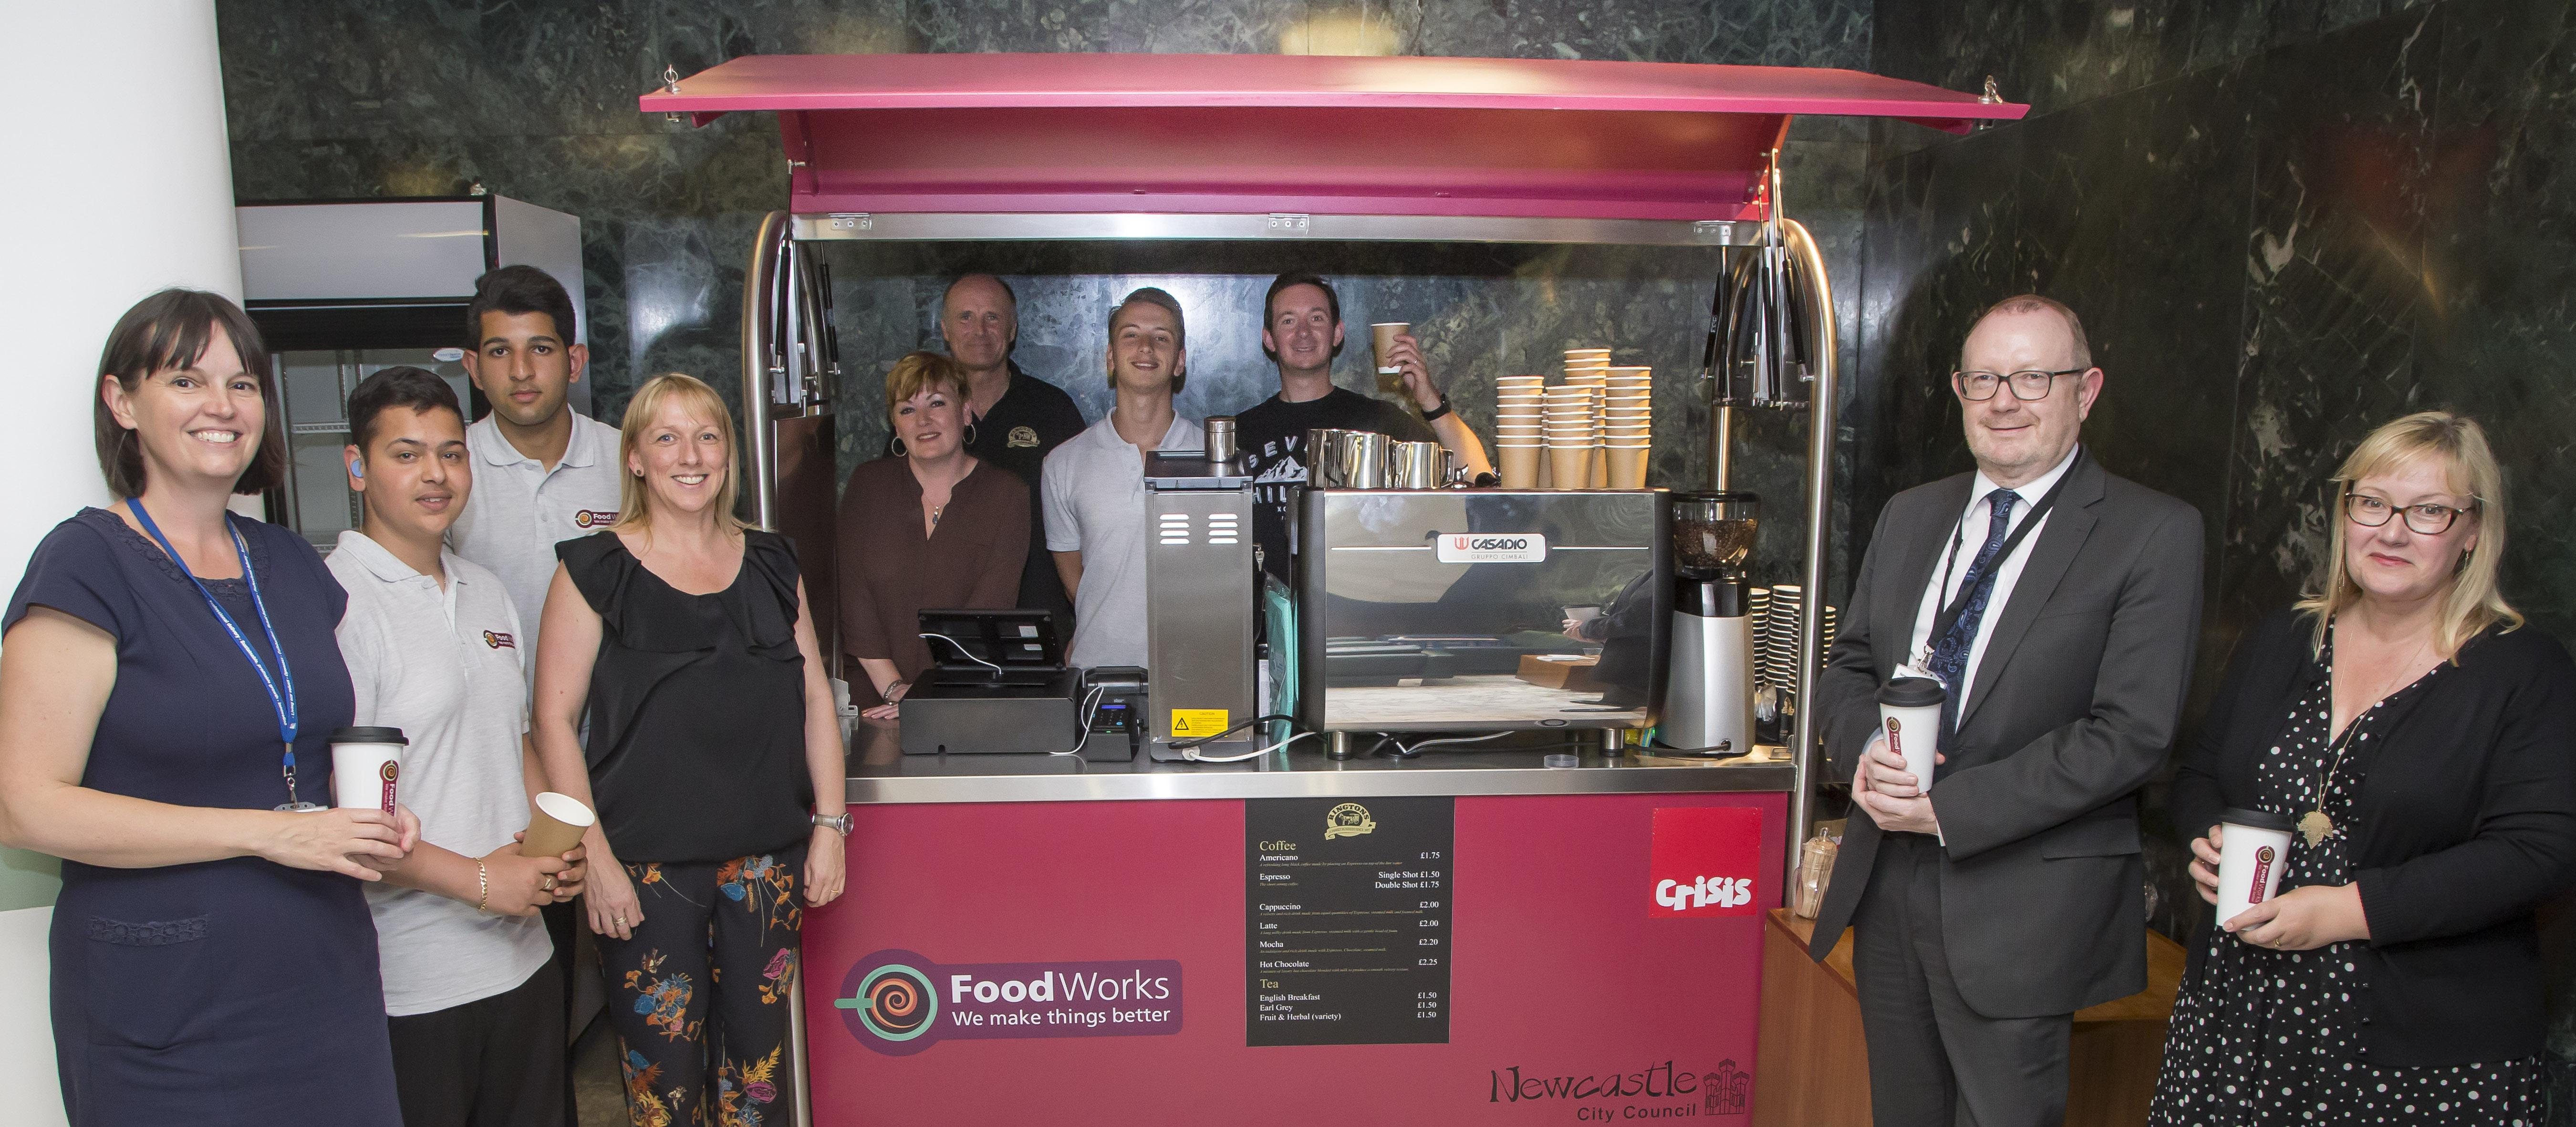 FoodWorks staff and coffee cart